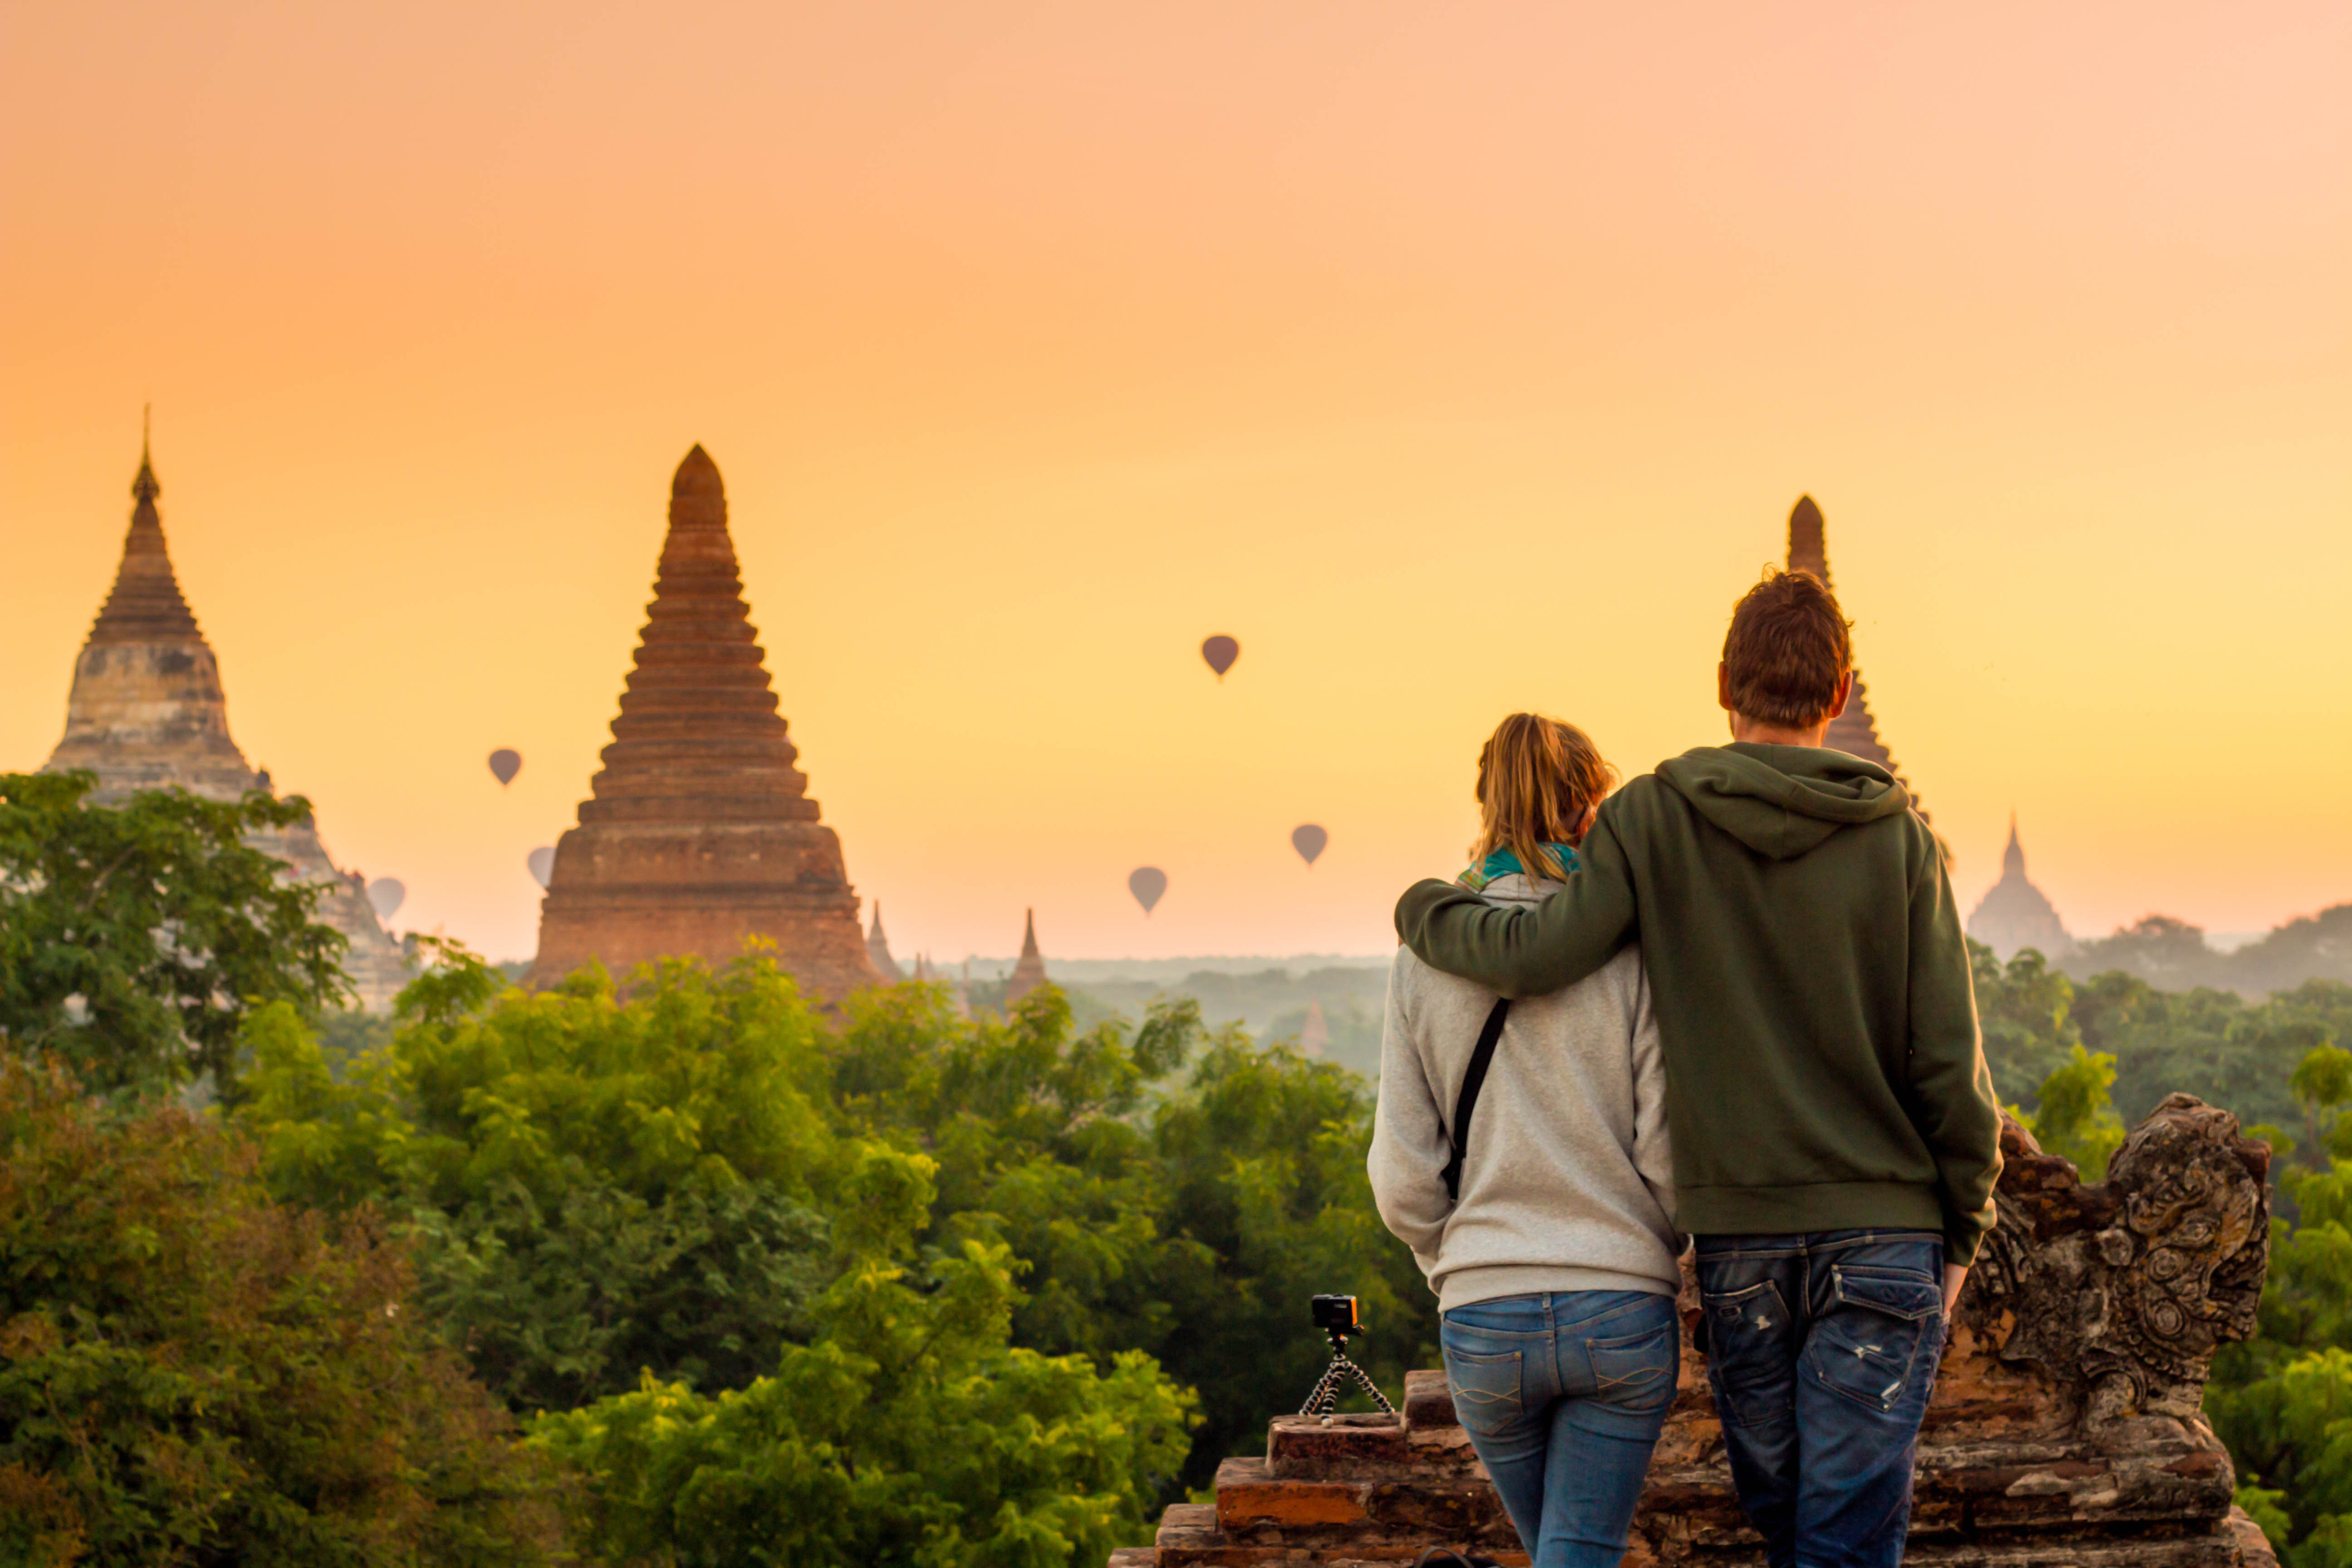 traveling couples   couples who travel   traveling   travel tips   tips and tricks for traveling   vacation tips